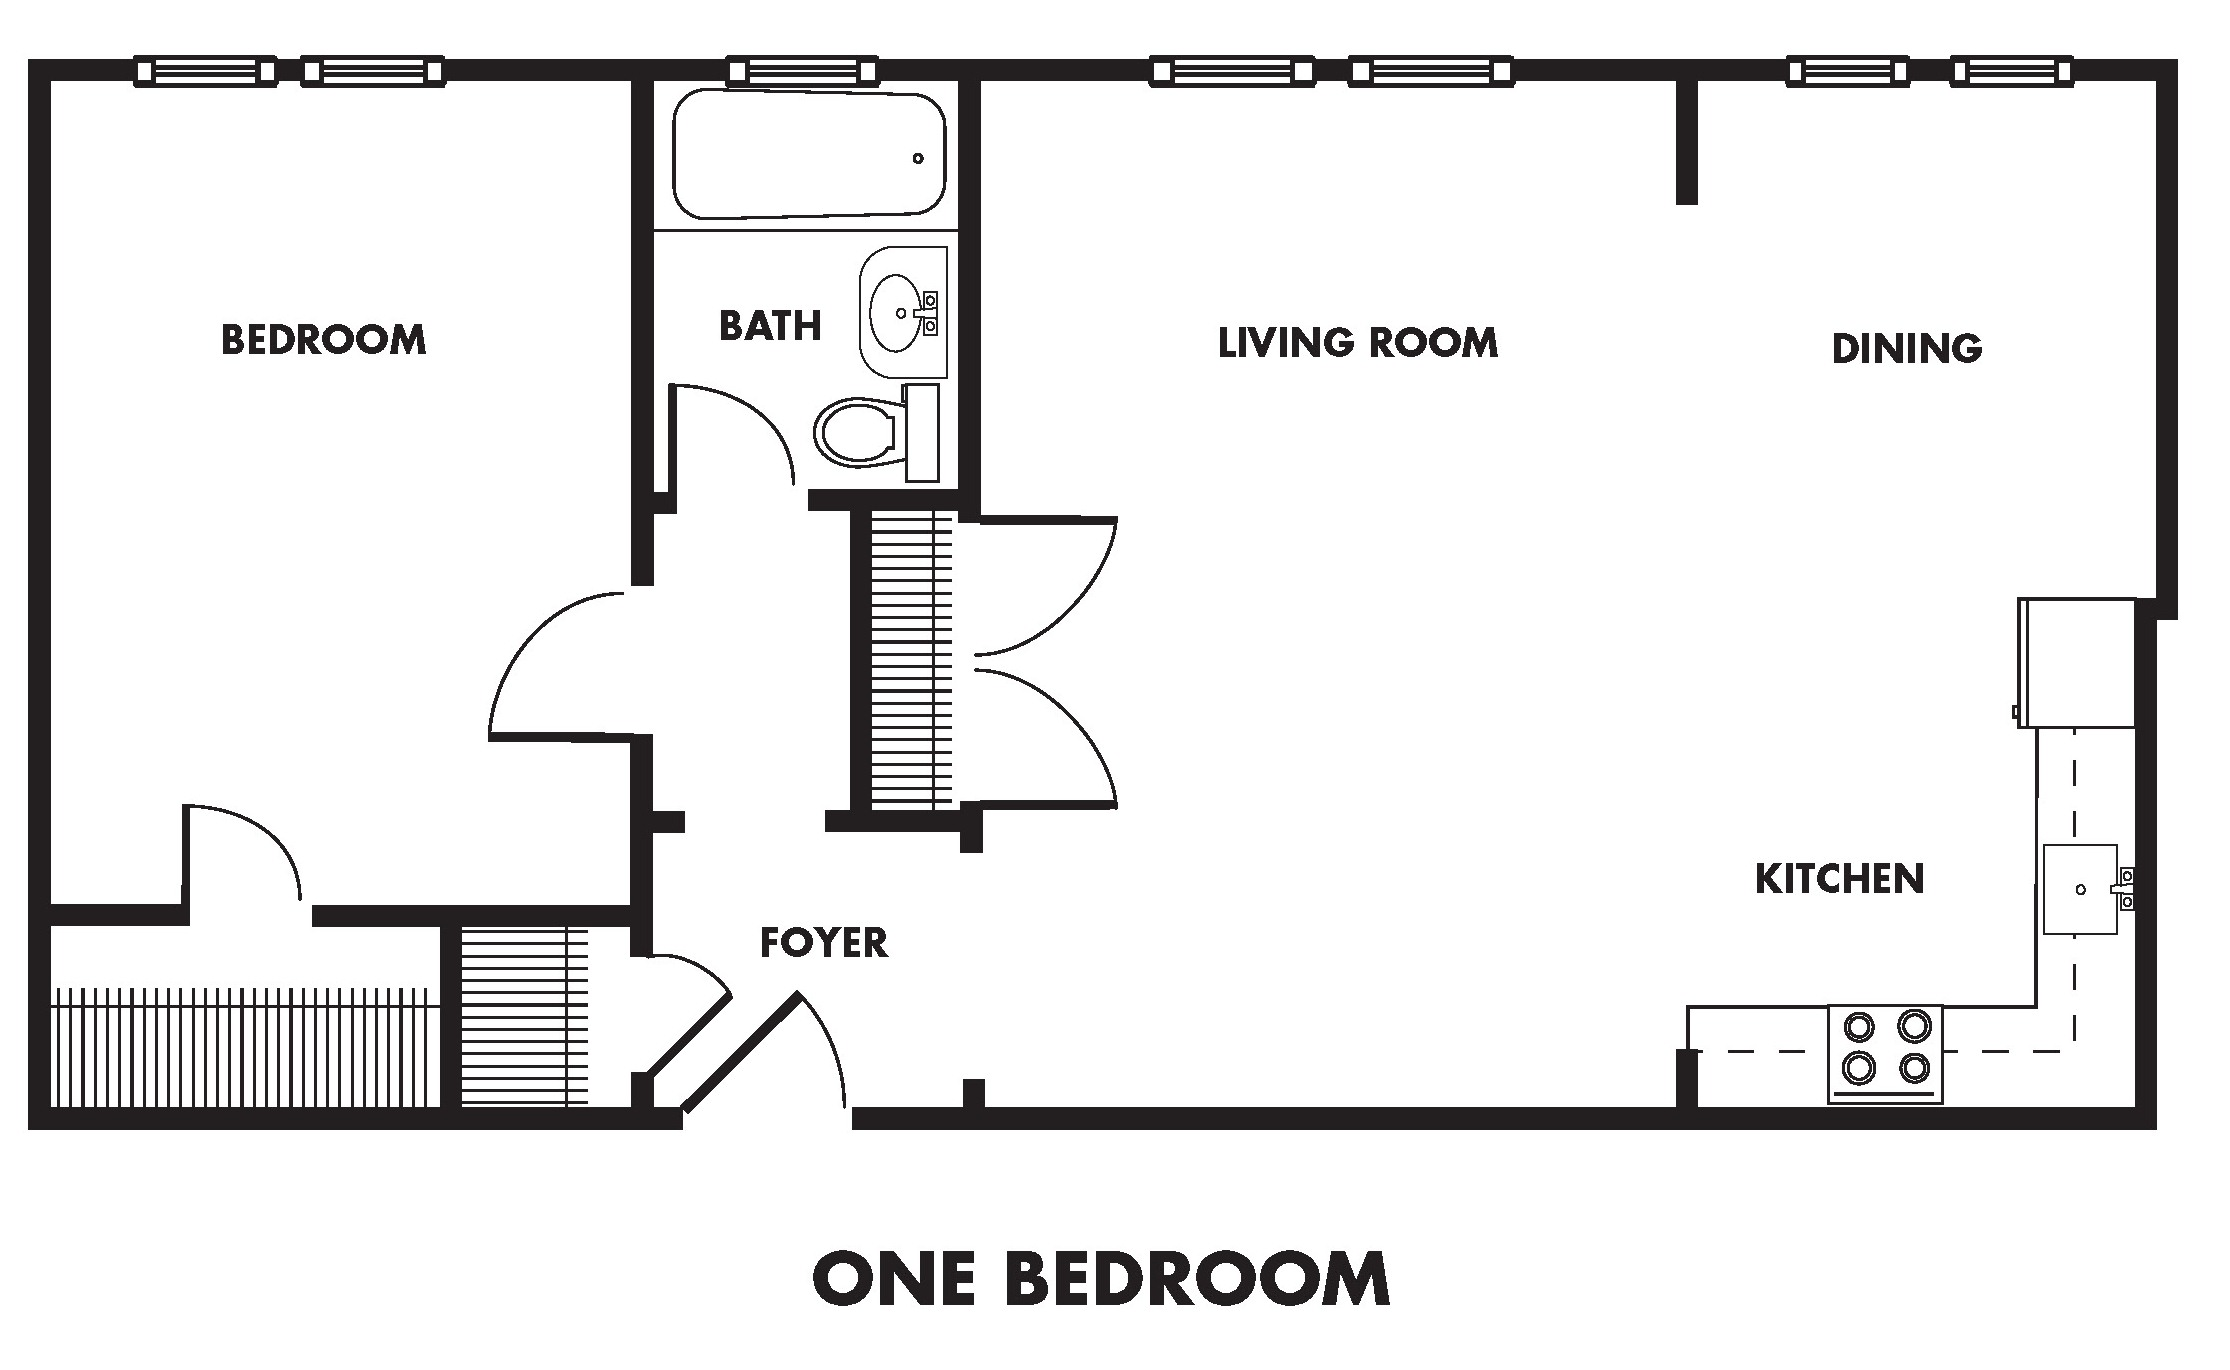 One Bedroom (A)